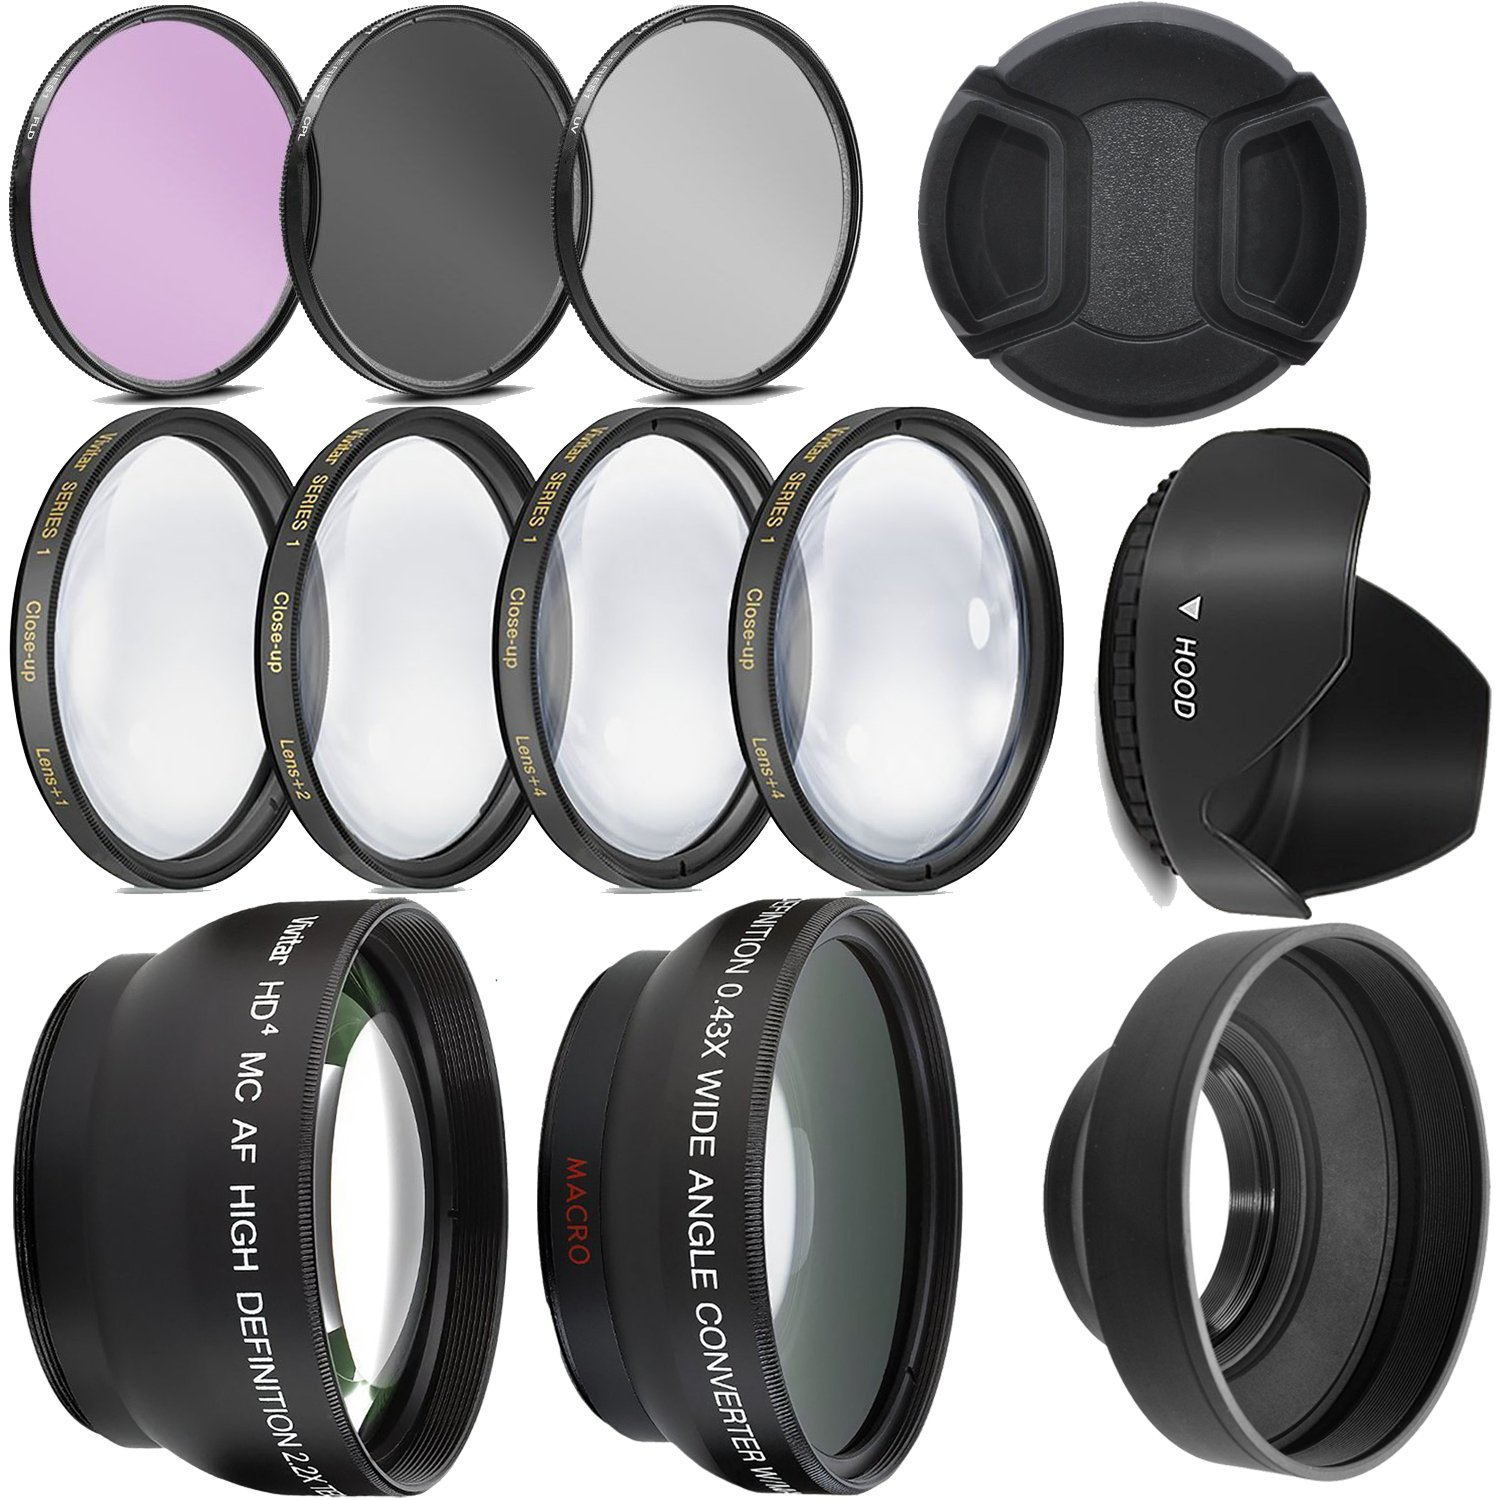 Ultra Deluxe Lens Kit for Canon Rebel T3, T5, T5i, T6, T6i, T7i, EOS 80D, EOS 77D Cameras with Canon EF-S 18-55mm is II STM Lens - Includes: 7pc 58mm Filter Set + 58mm Wide Angle and Telephoto Lens by Big Mike's